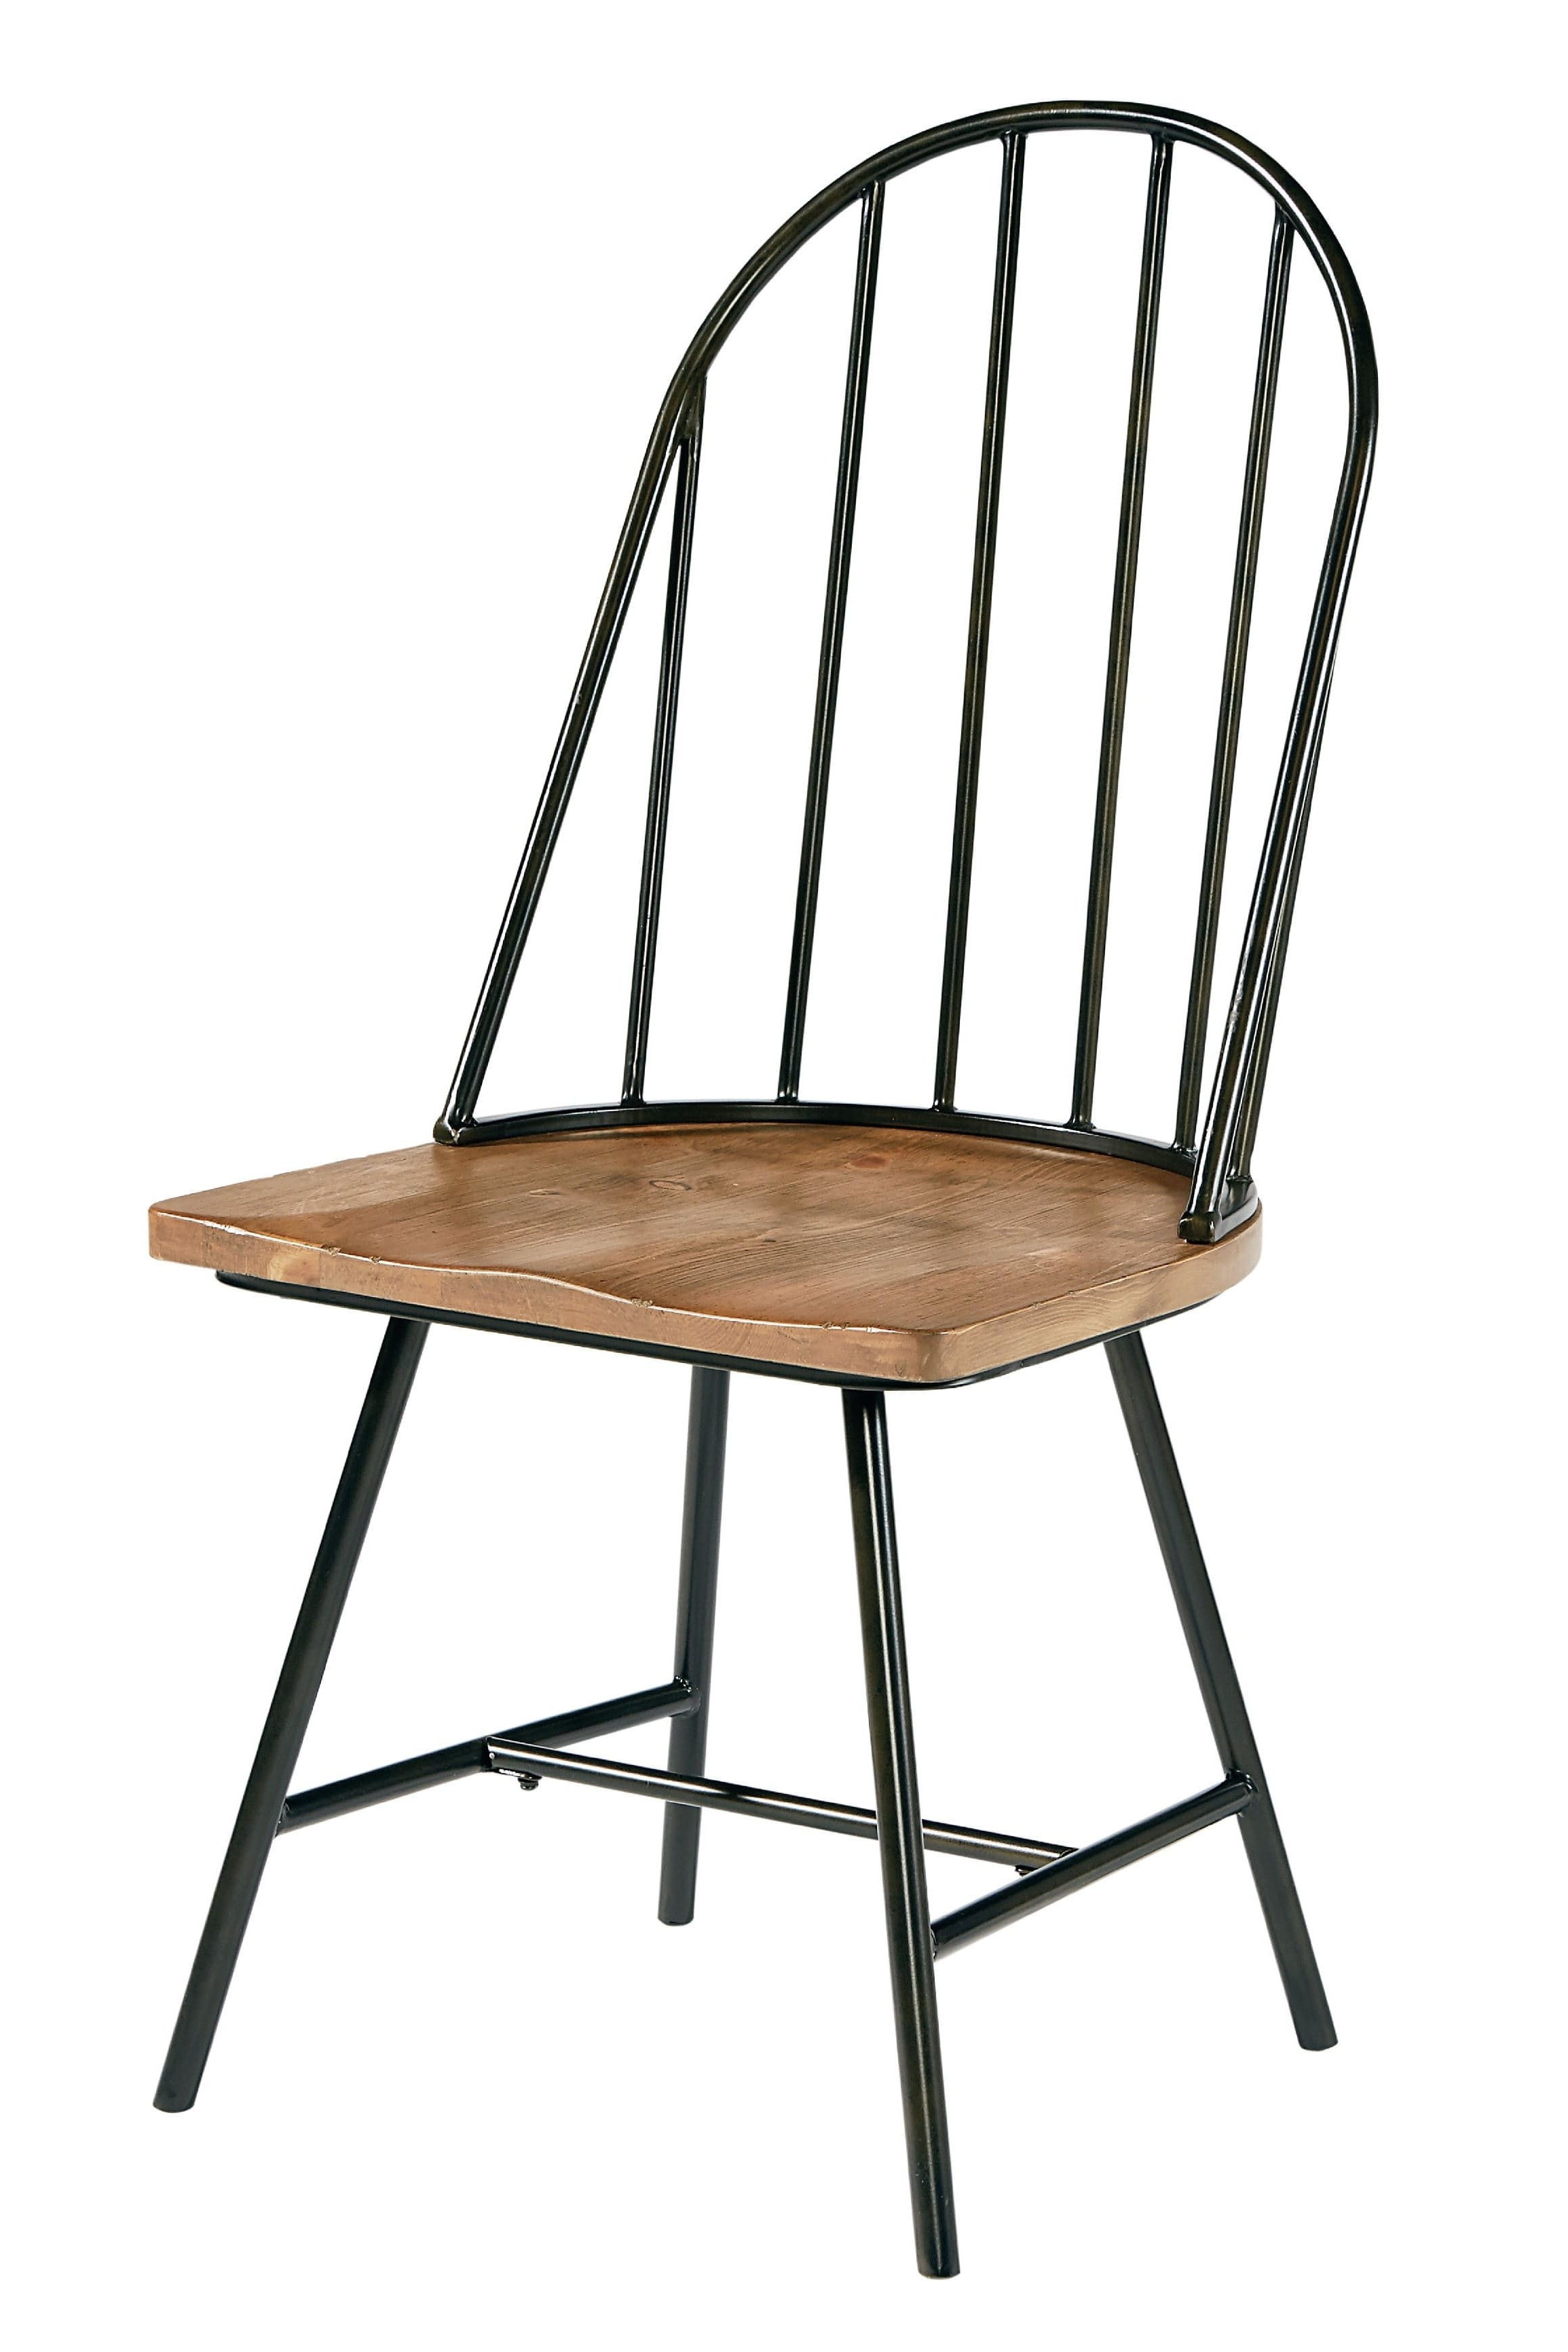 Magnolia Home Harper Patina Side Chairs Intended For Famous Magnolia Home – Windsor Metal And Wood Hoop Chair St: (View 12 of 20)